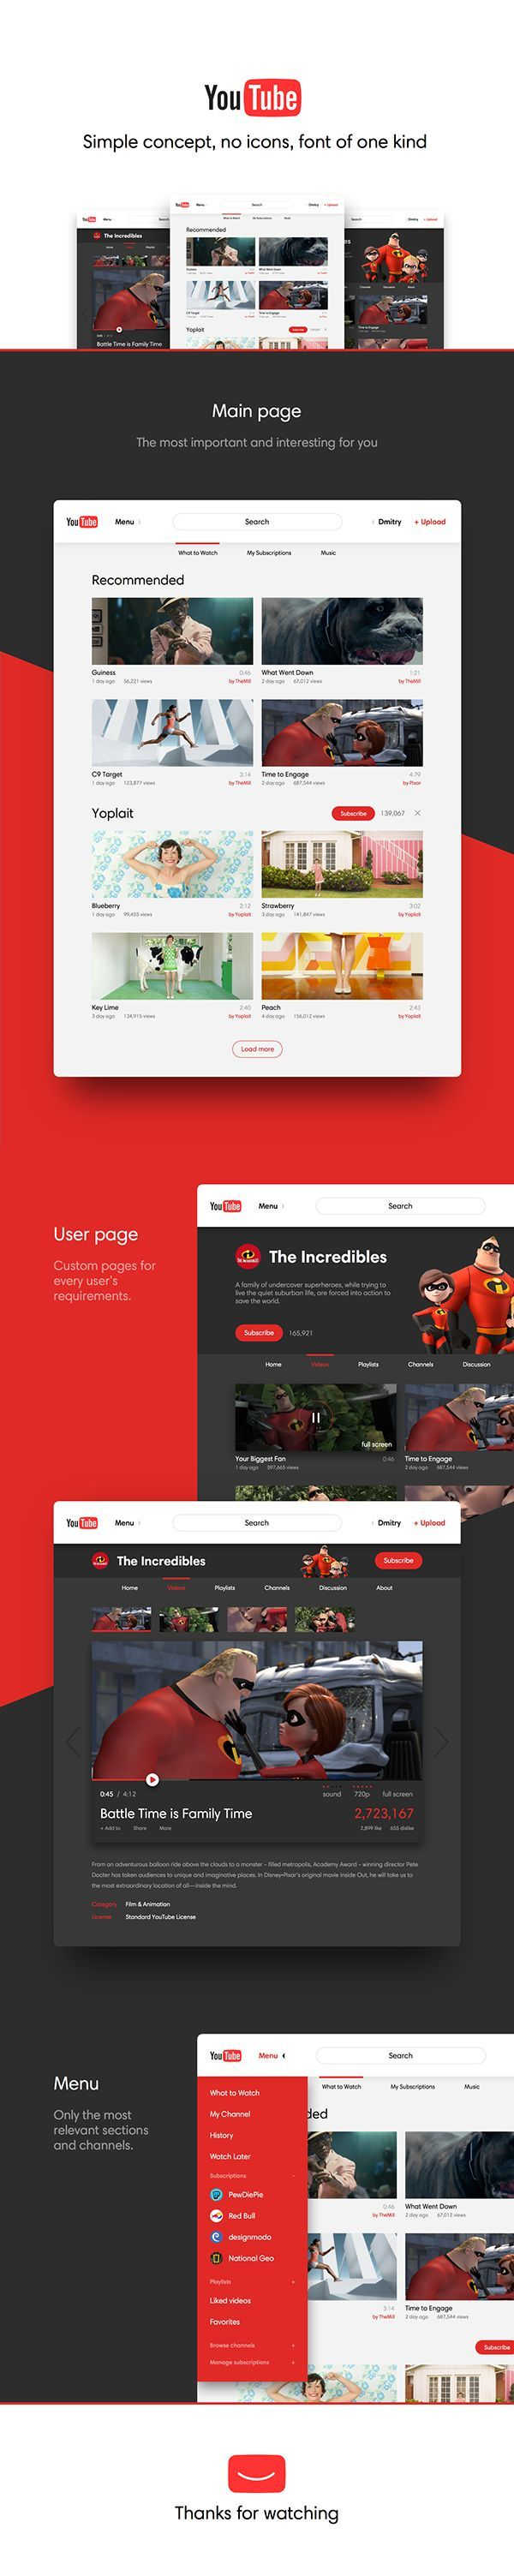 YouTube Simple concept by Dmitry Nikonov